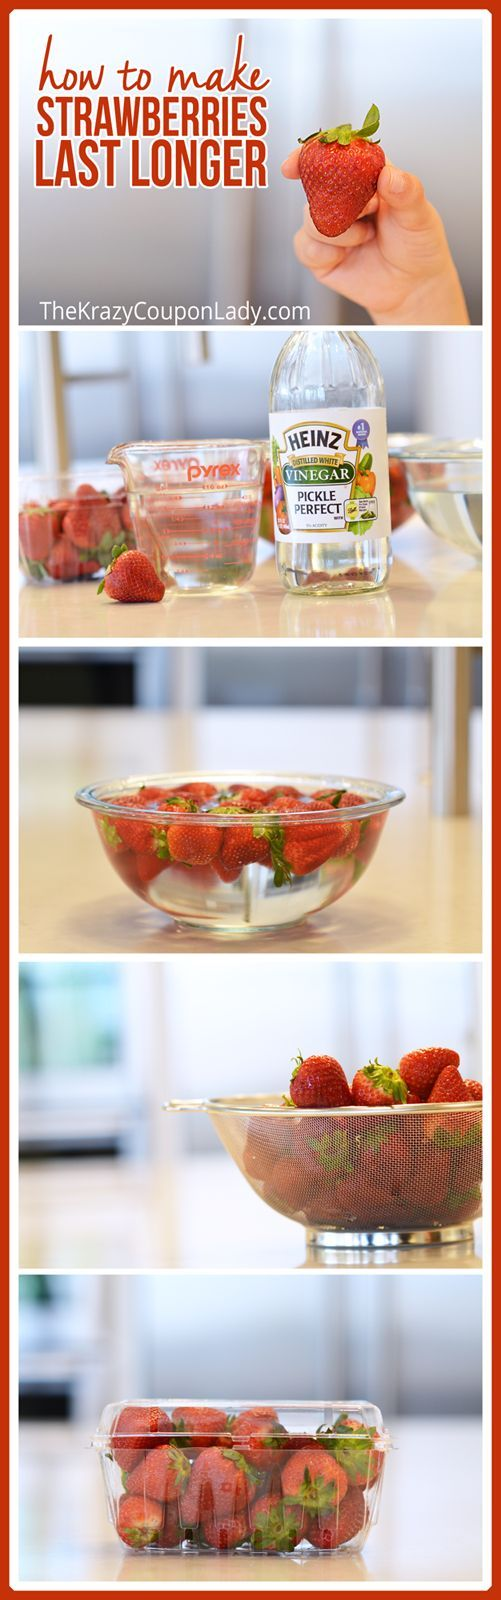 HOW TO MAKE STRAWBERRIES LAST LONGER. The Vinegar Wash Recipes You've Seen are WRONG. Here's the DIY berry wash that actually works!